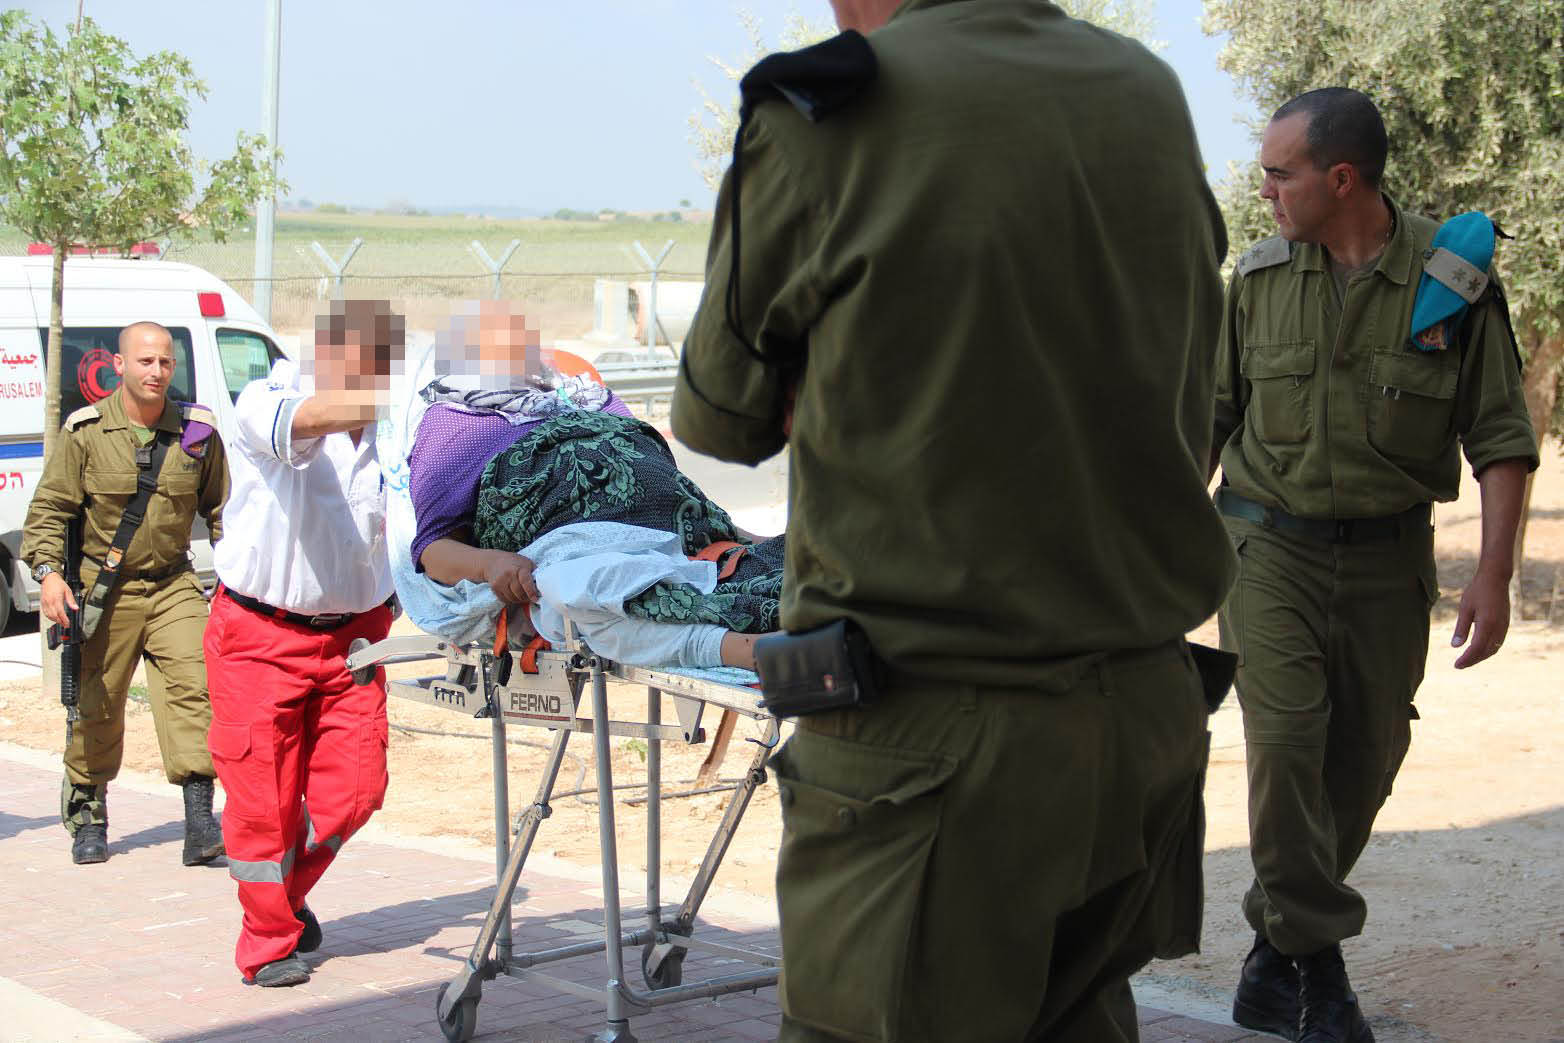 Israel and the Gaza Strip: Why Economic Sanctions Are Not Collective Punishment The IDF Medical Corps treating injured Palestinian civilians at the Erez Border Crossing. (IDF Flicker)